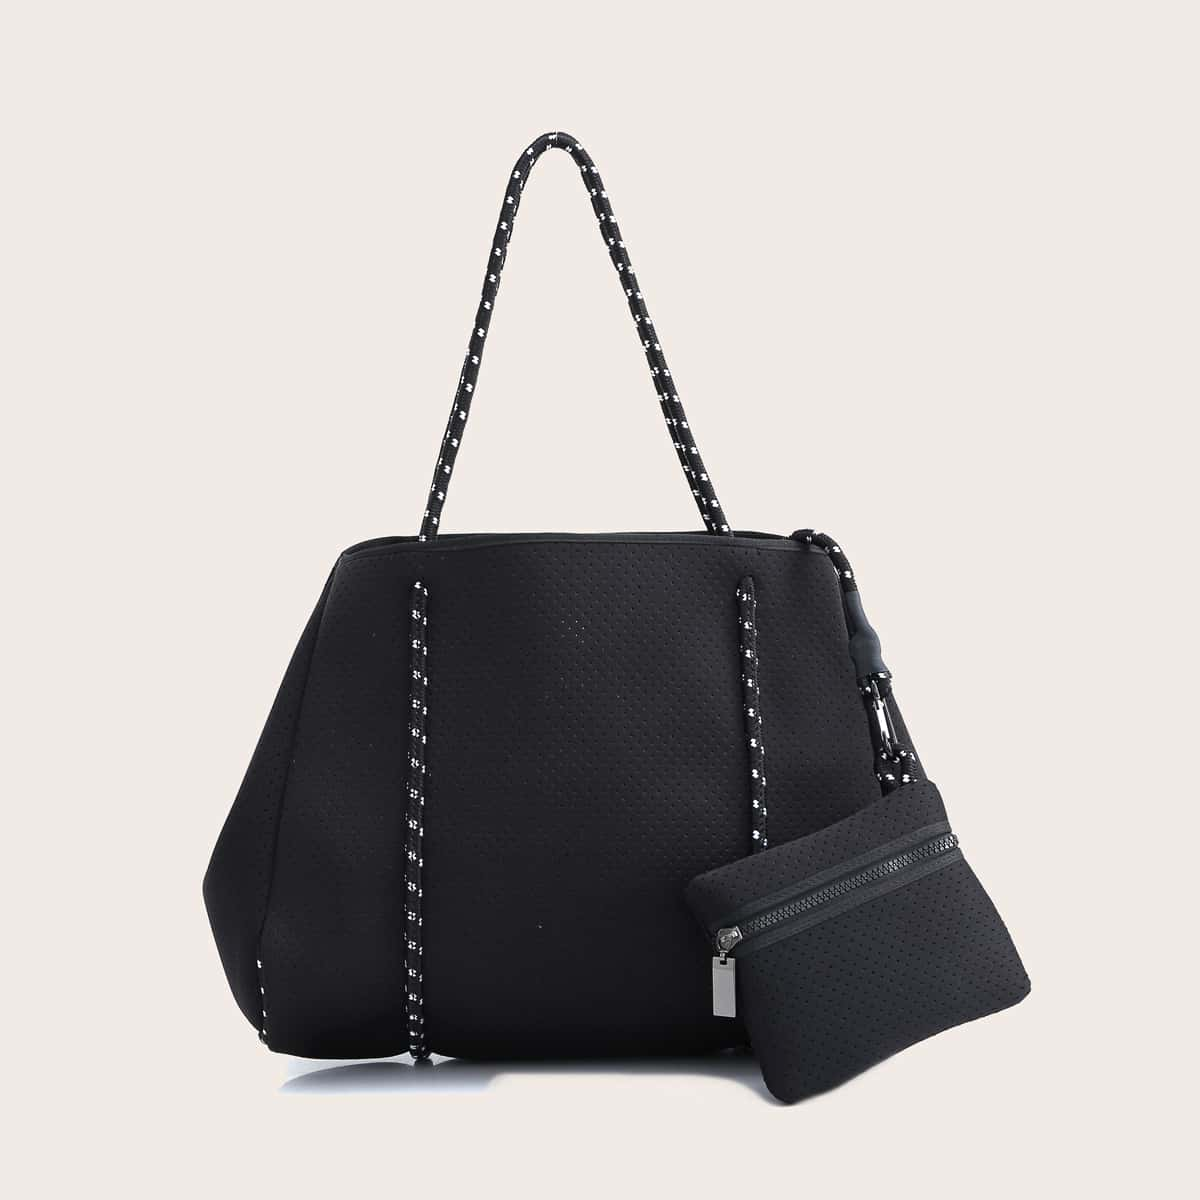 Large Capacity Tote Bag With Purse (swbag18200805049) photo